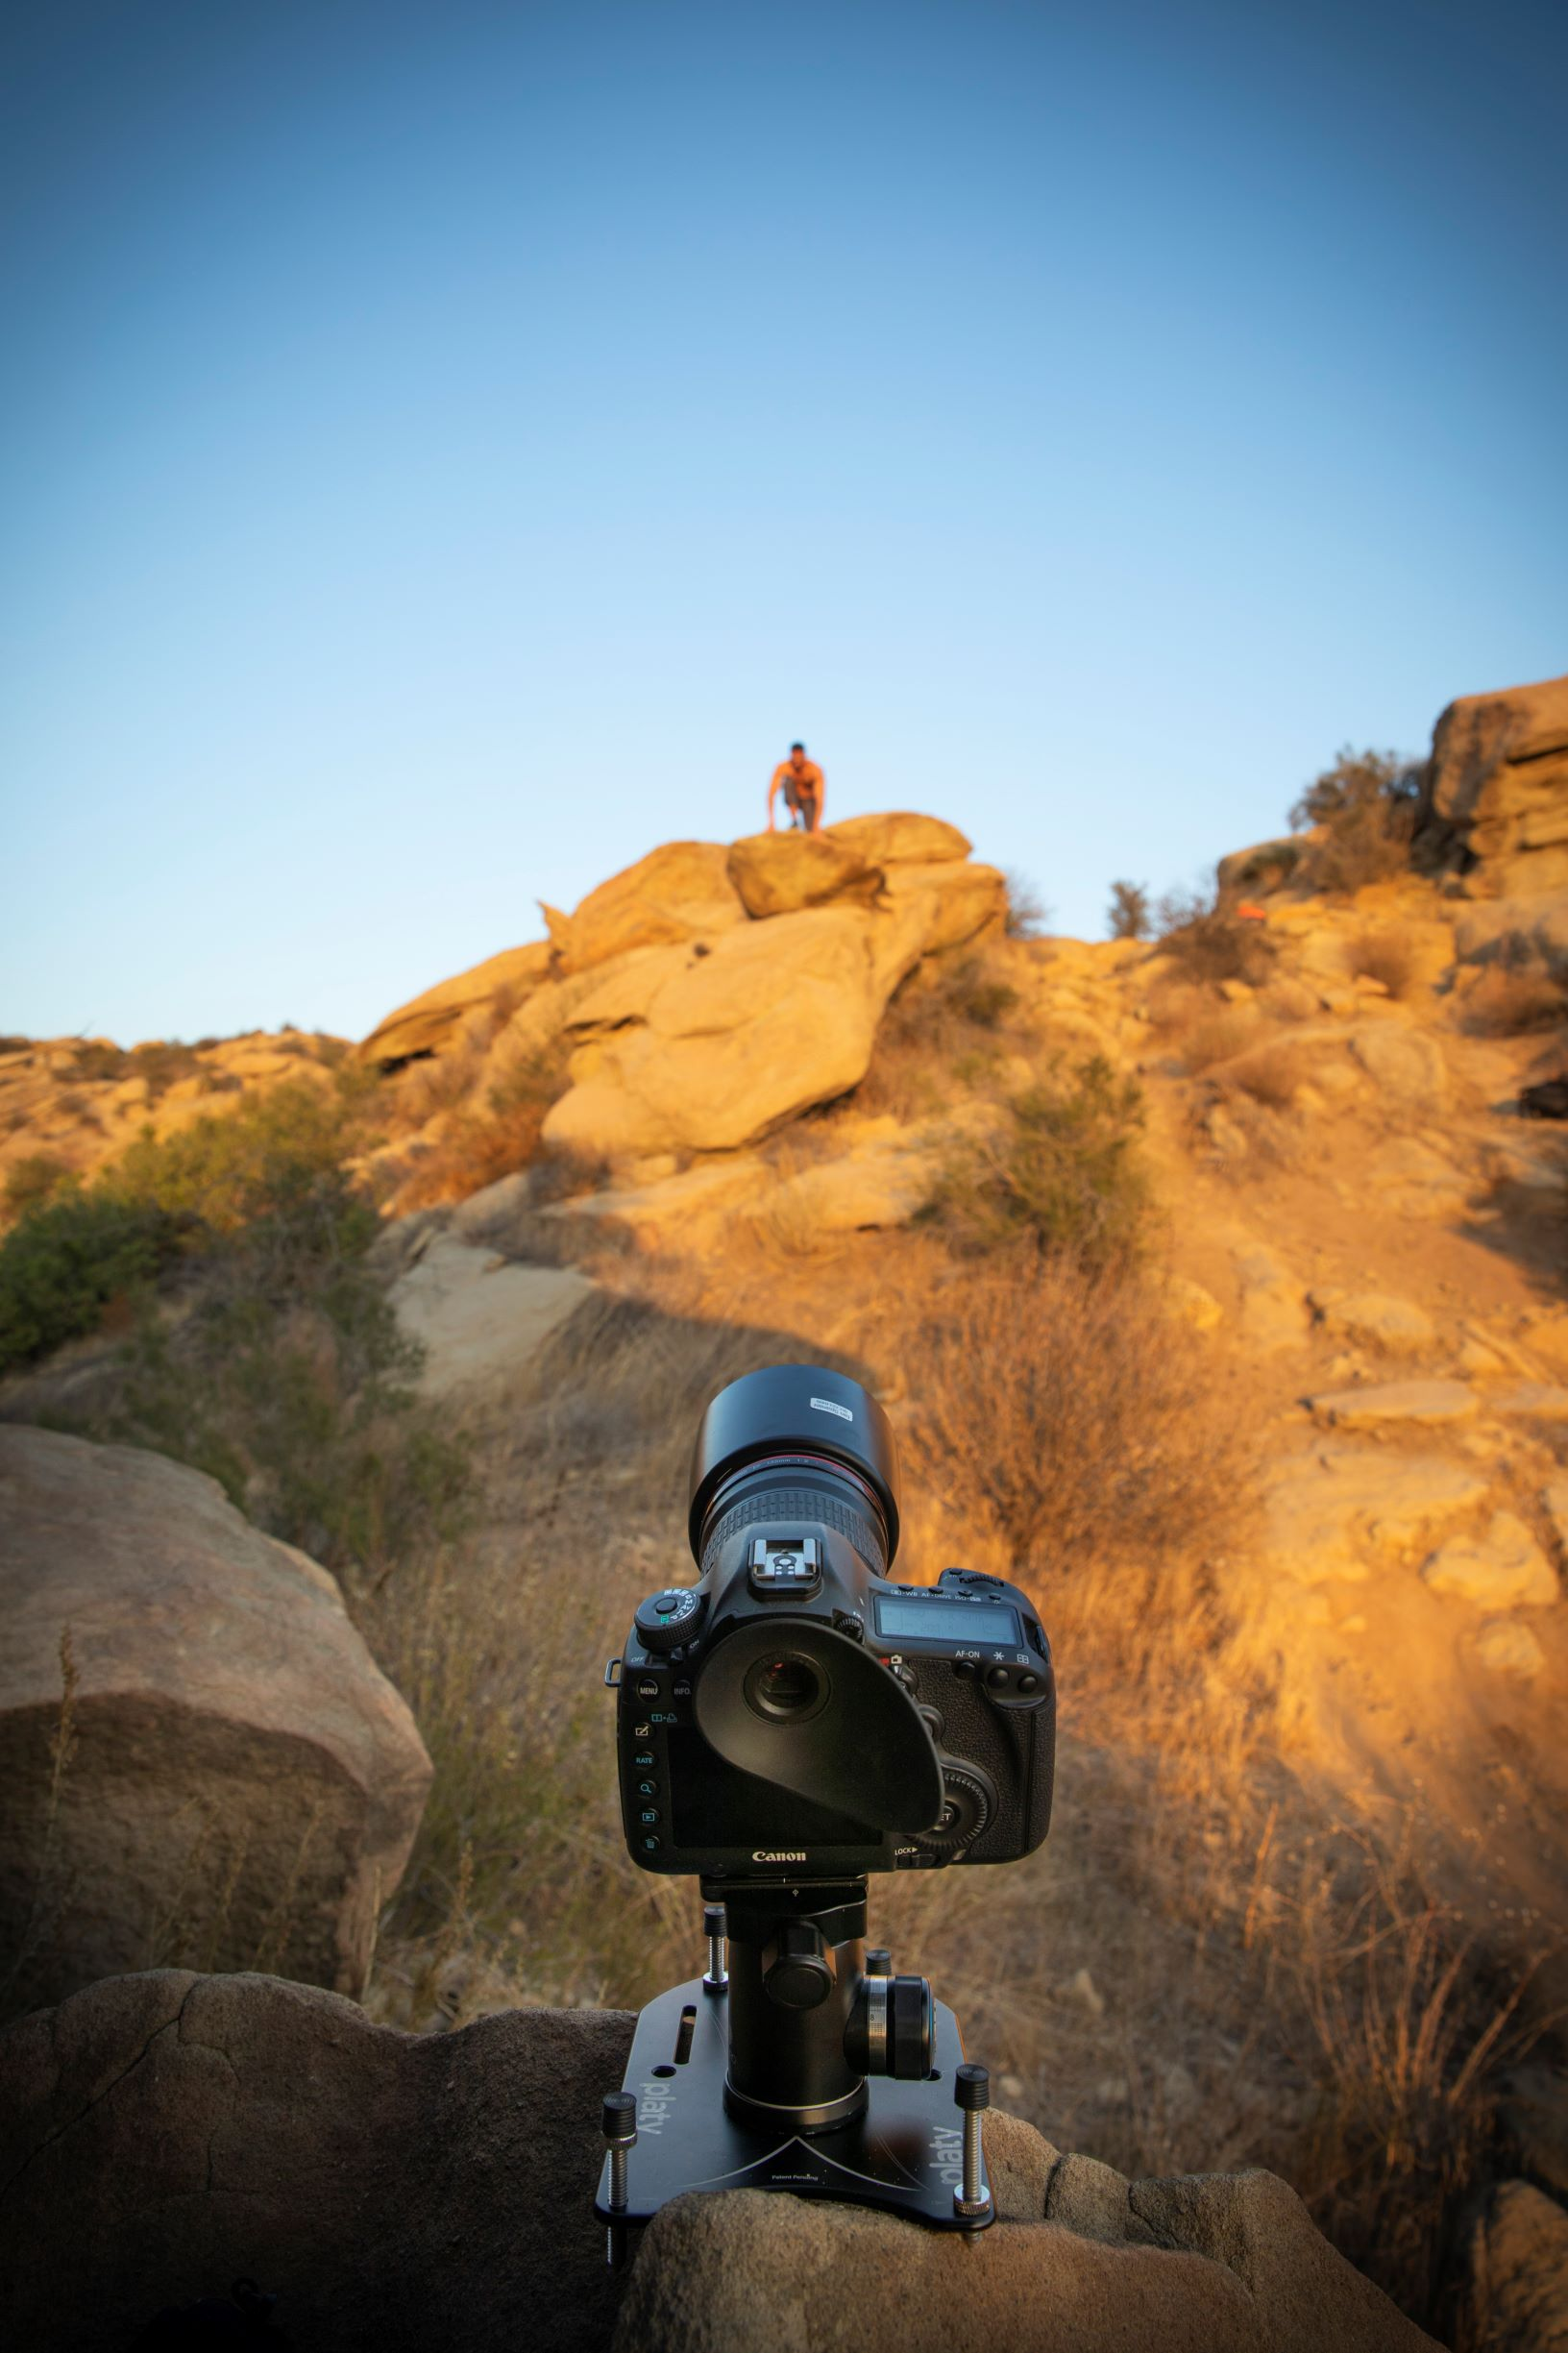 Setting up my 5DMark3 with a 135 mm Lens on    Platypod Max    is quick and easy, even in rough terrain. I set this camera up as I continued to shoot with my other camera and I waited for the light to drop. © Ian Spanier Photography 2018.